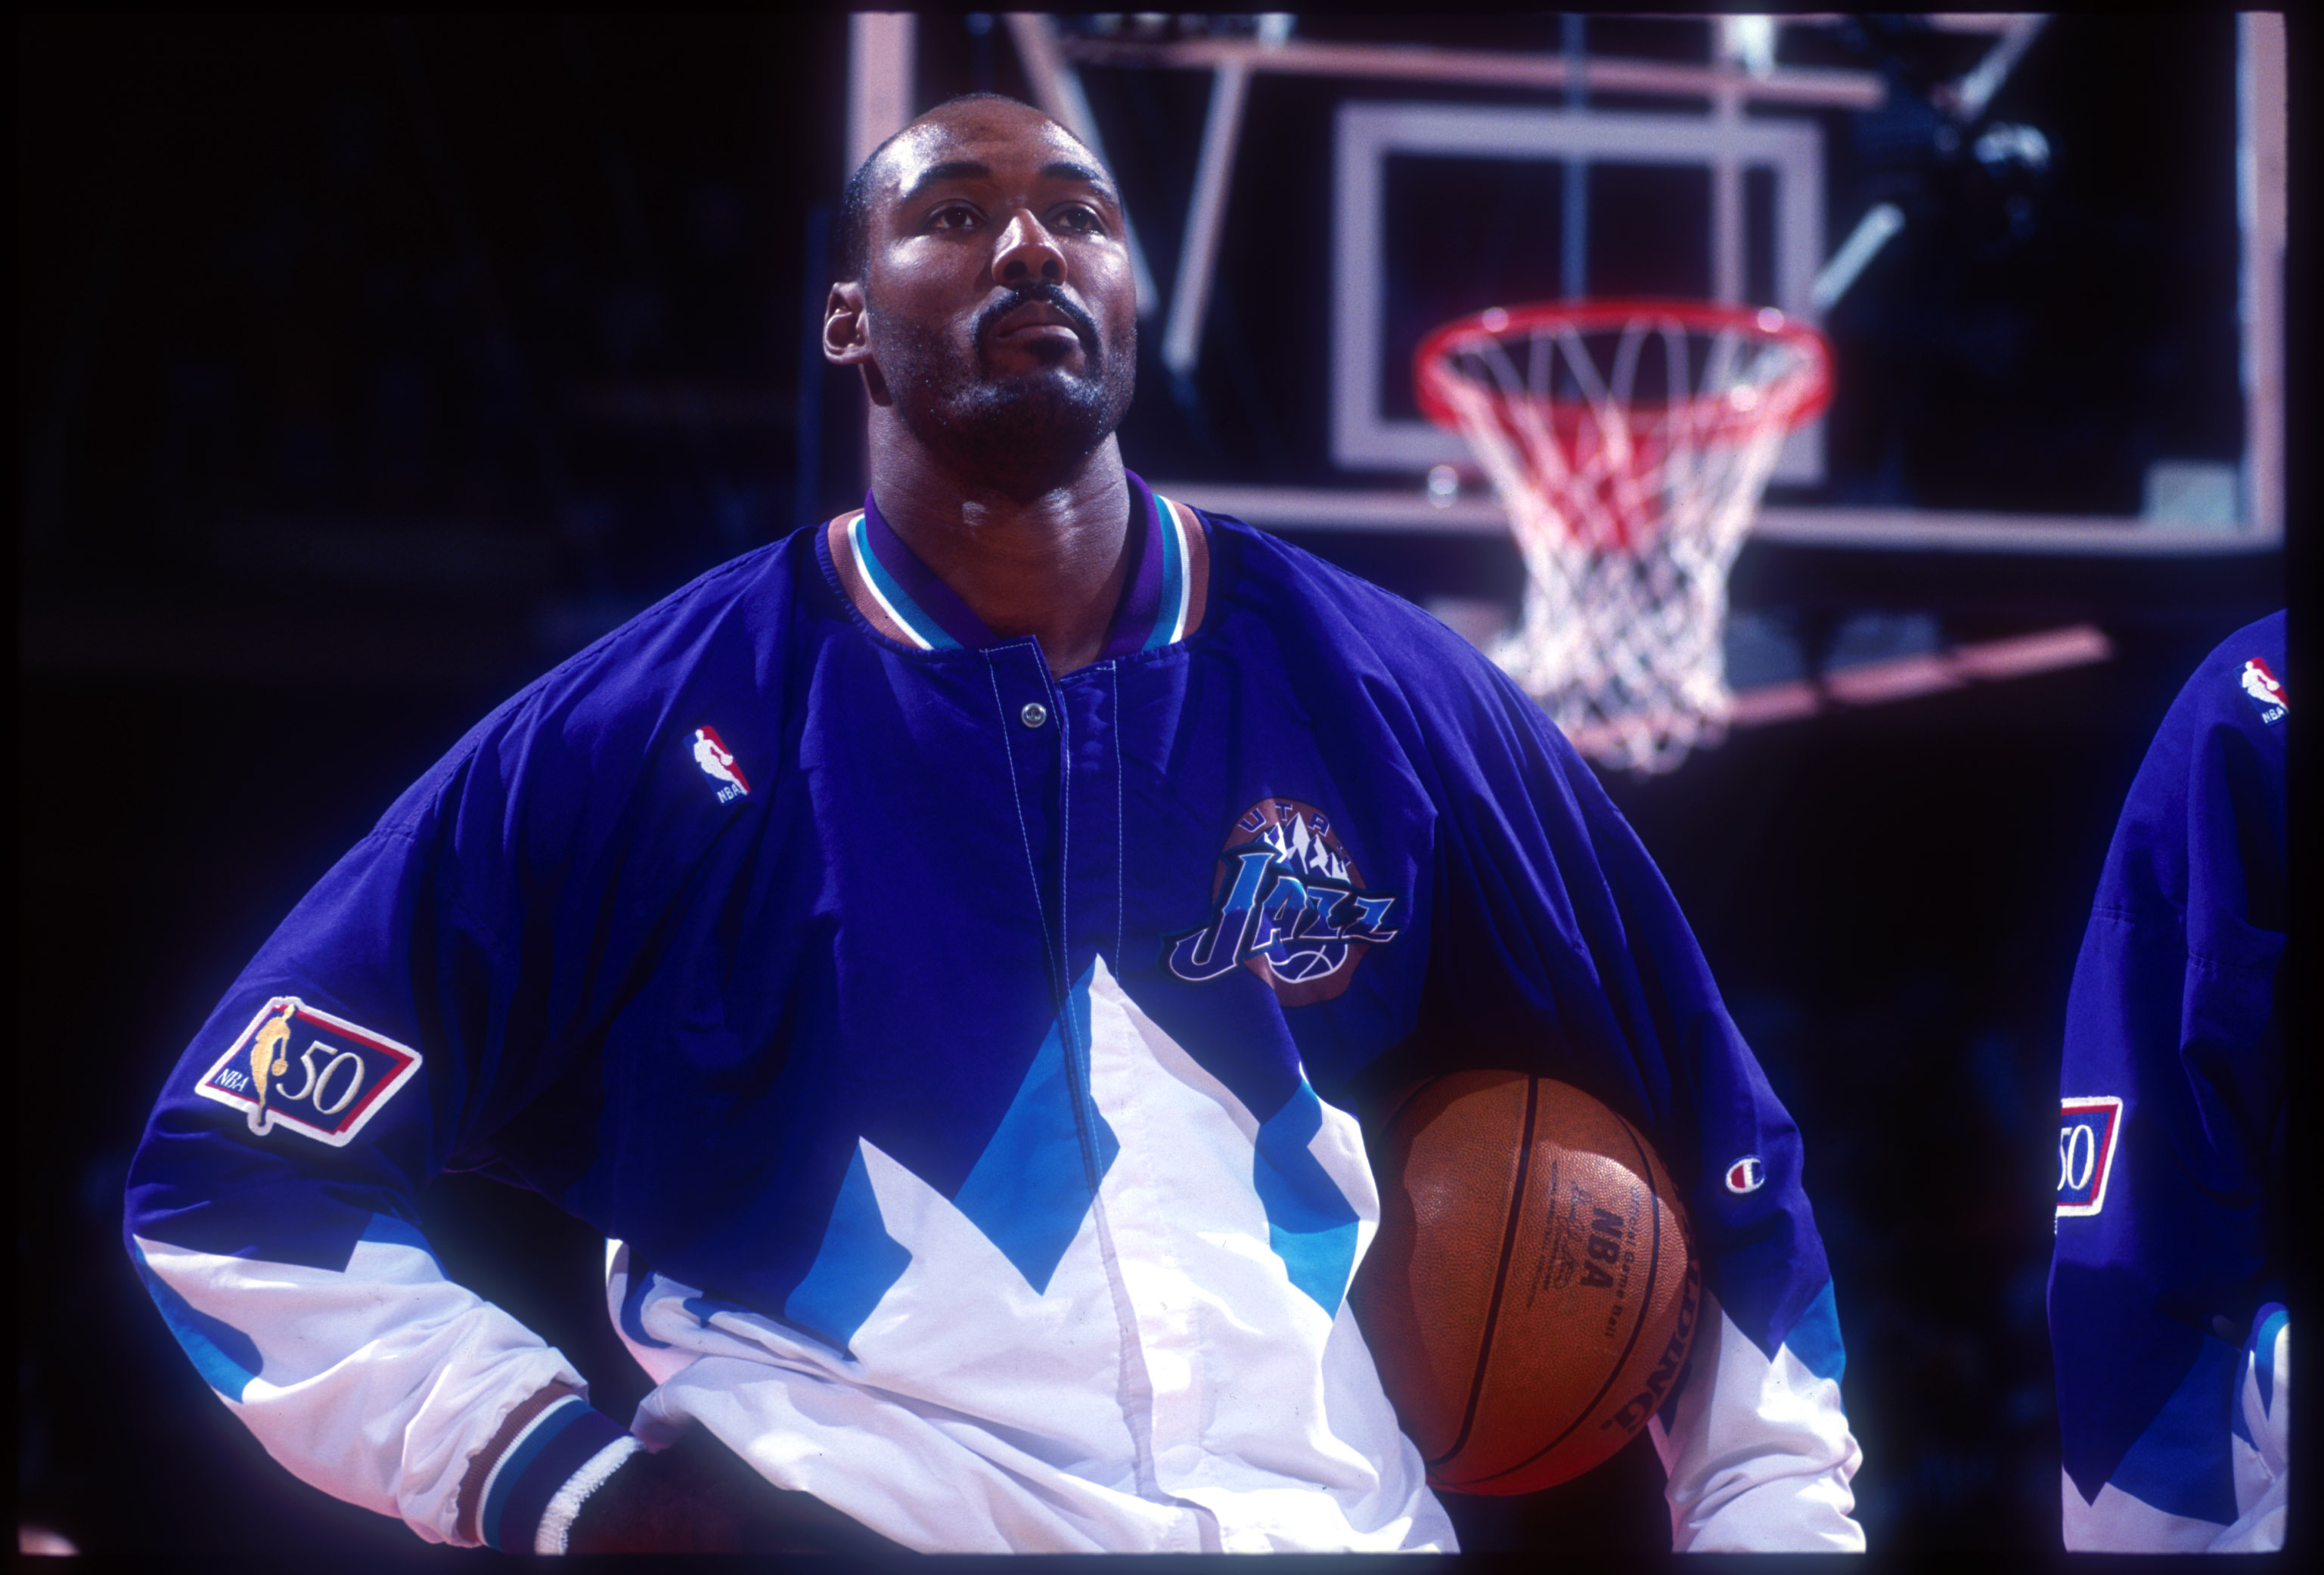 Fans blast Karl Malone's shady past after he criticizes Zion Williamson